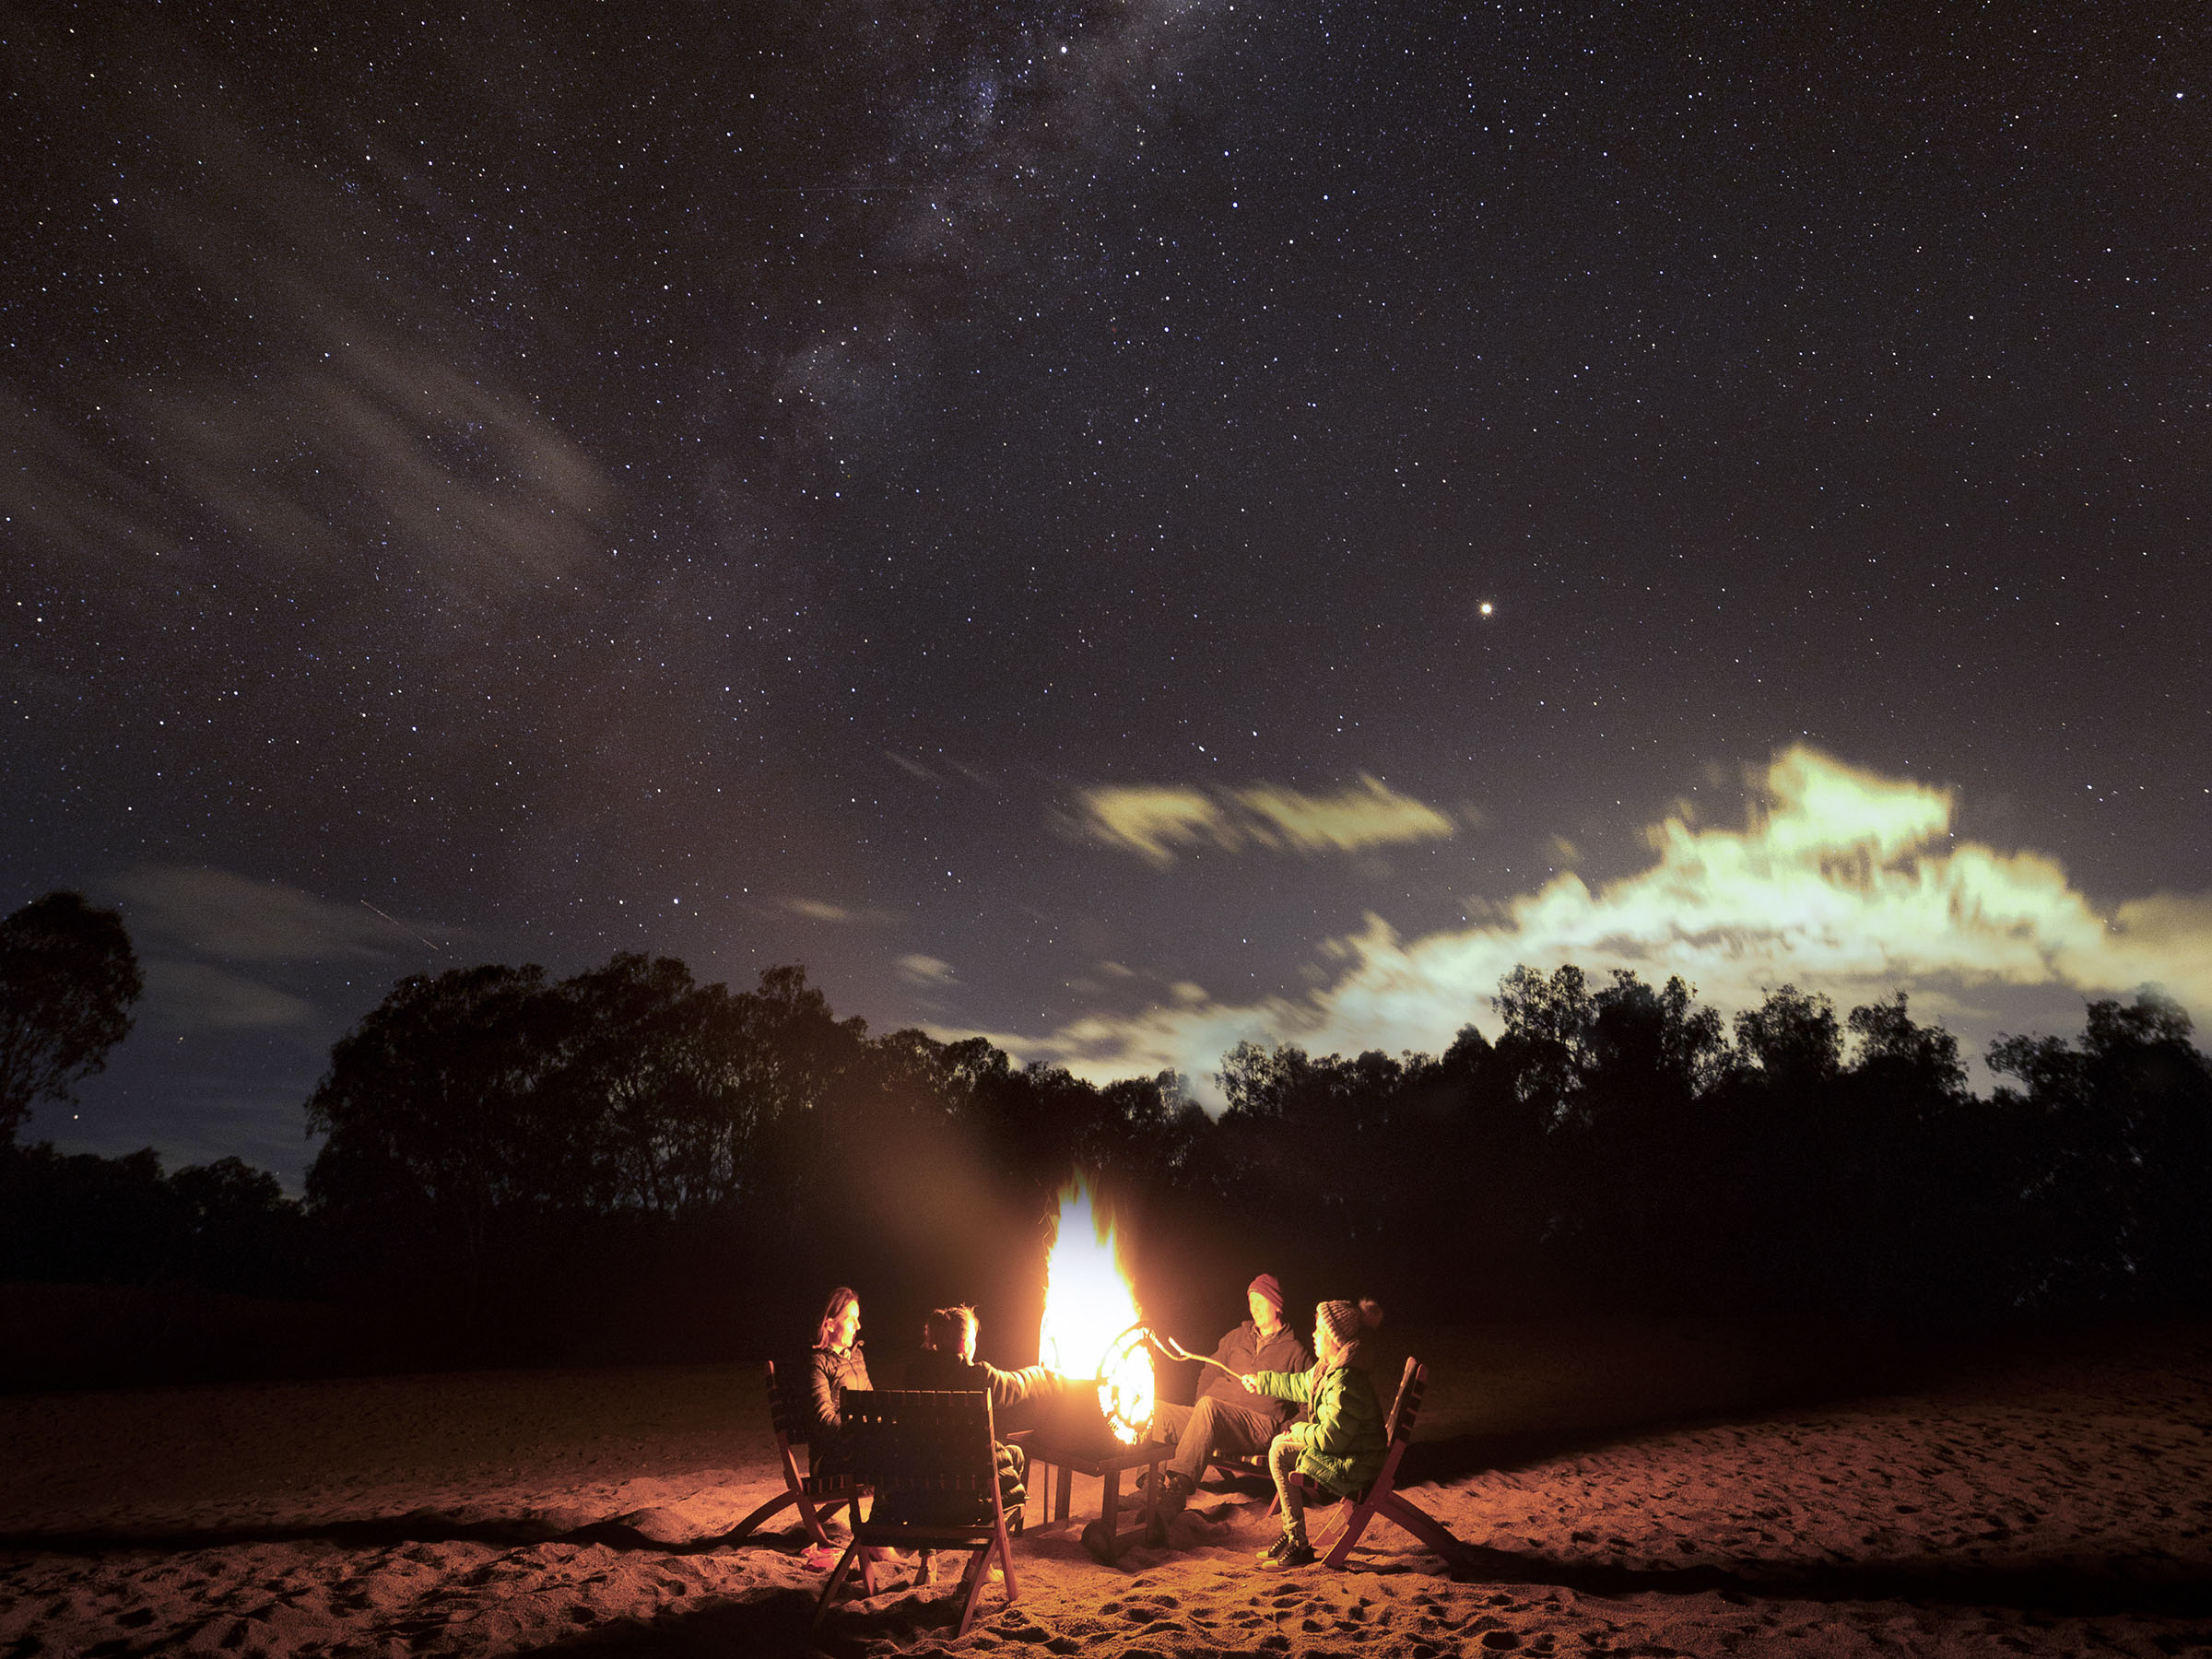 Camping under the stars in Wagga Wagga